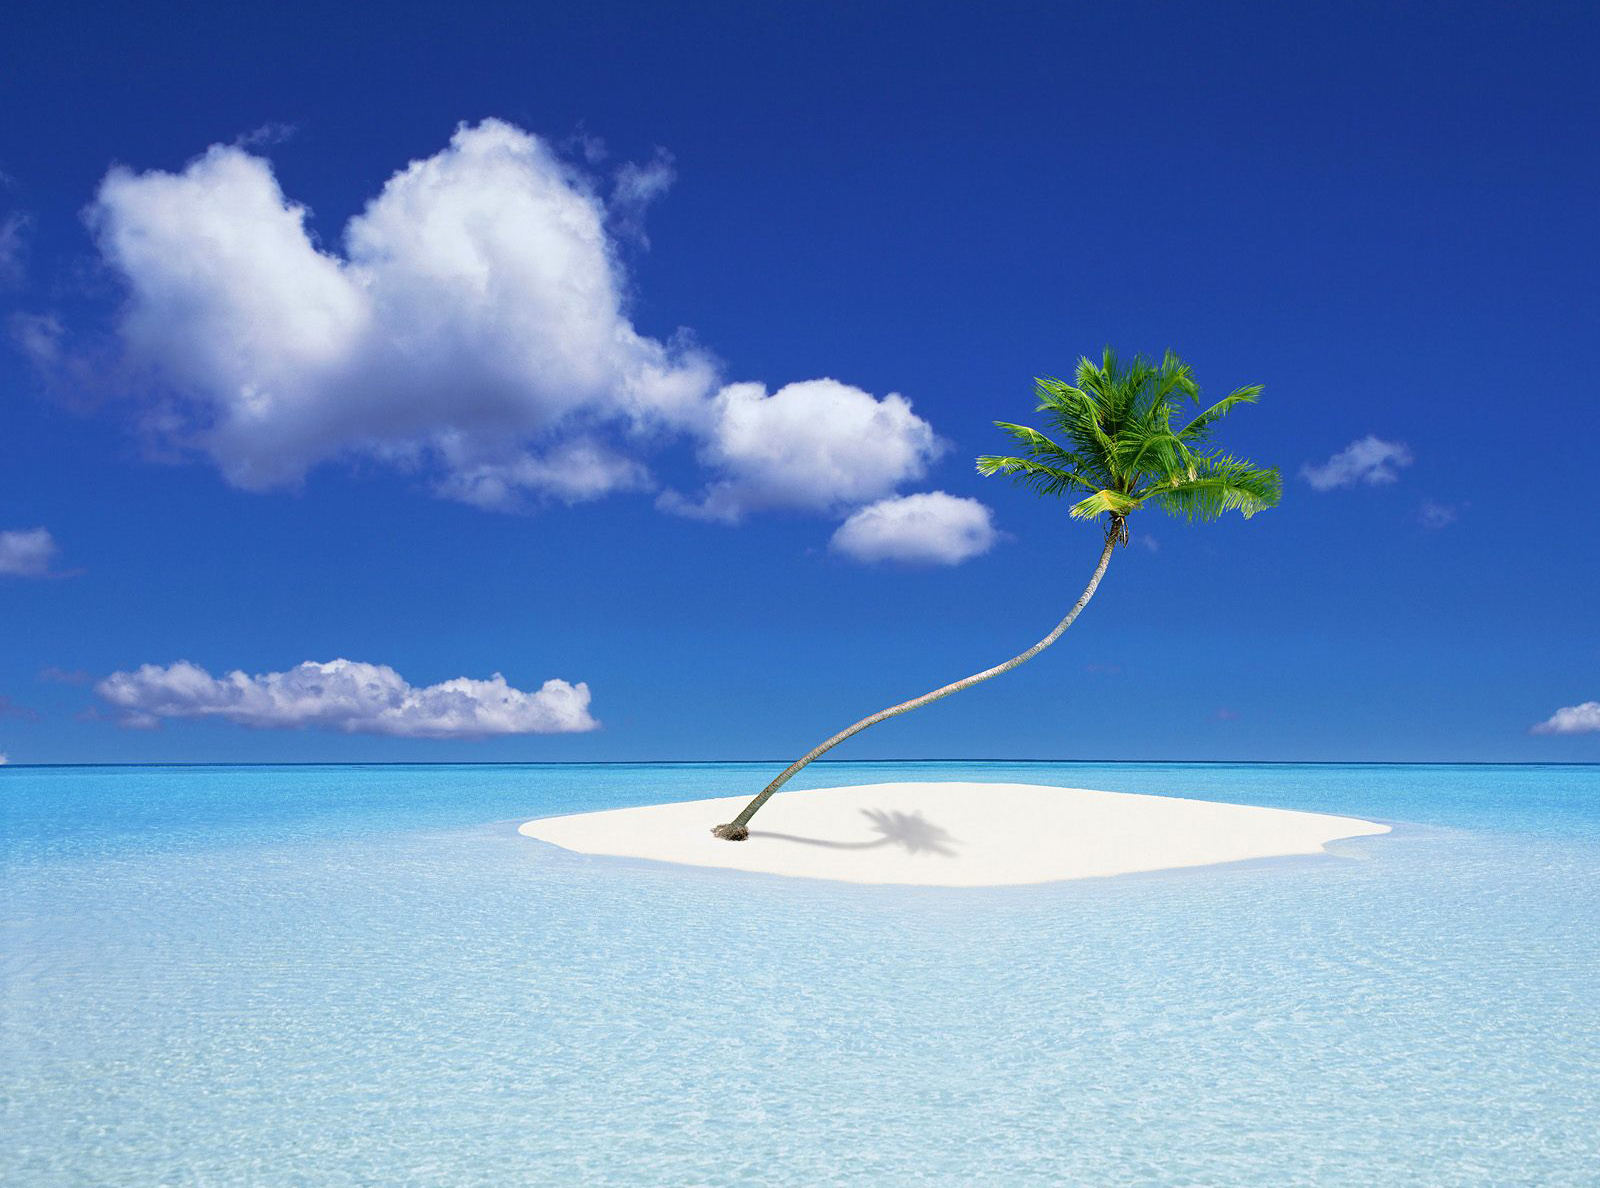 Island Holiday HD Wallpaper High Quality WallpapersWallpaper 1600x1188